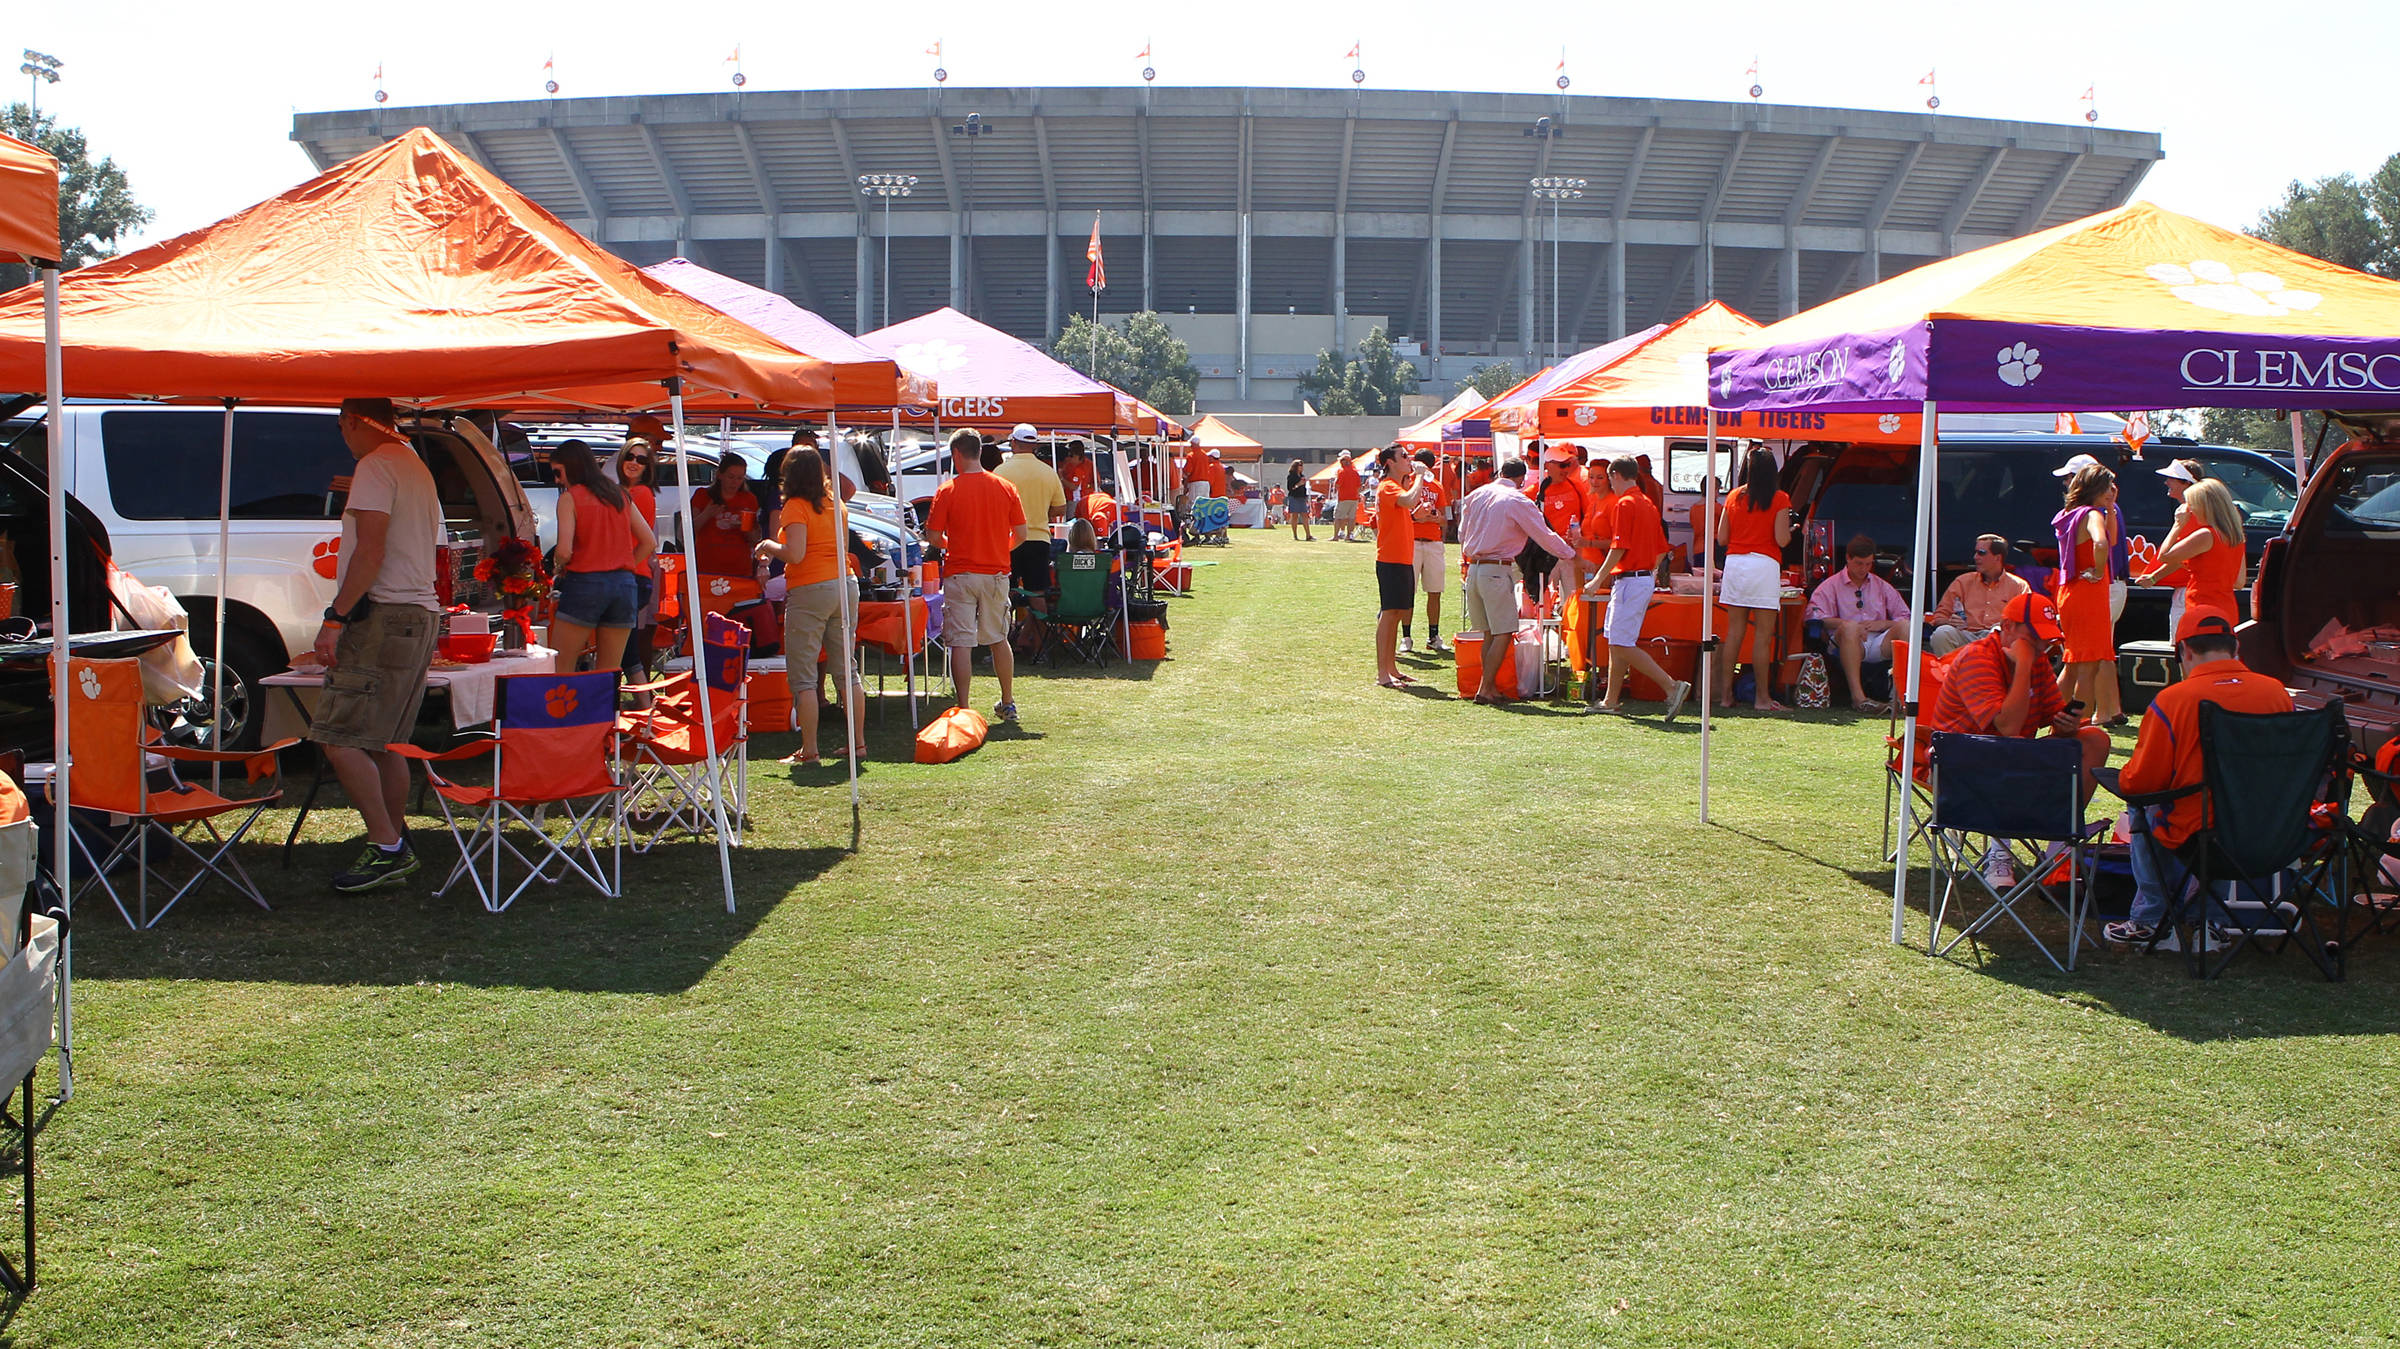 Clemson Wins the South's Best Tailgate